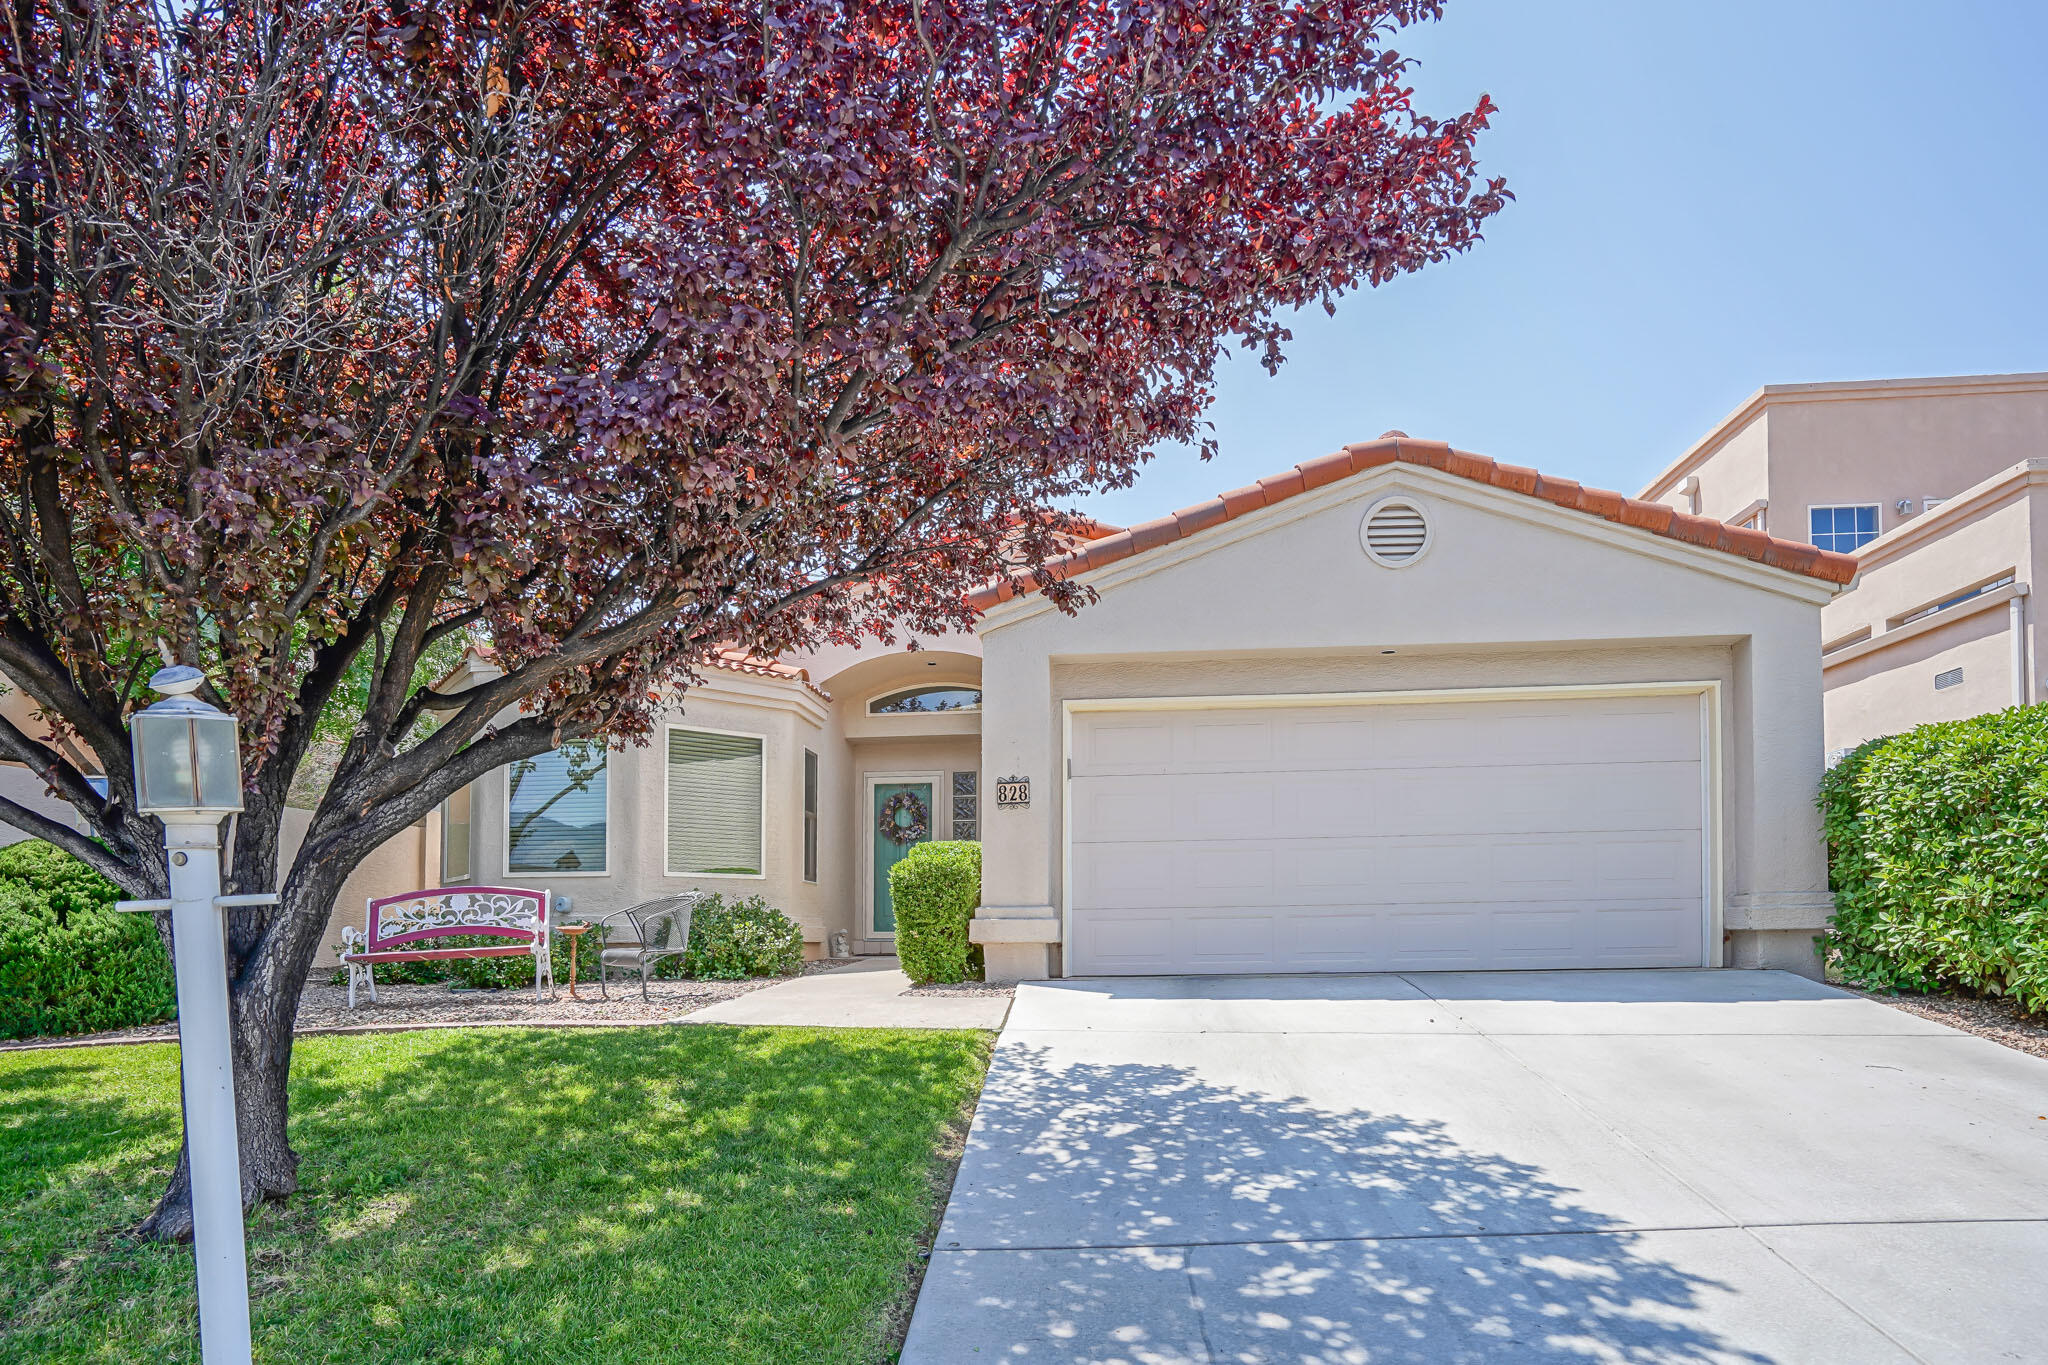 Great location in this quiet neighborhood tucked in by Four Hills. This well cared for home offers high ceilings, lots of updates & a private & shady back yard & patio. You'll love the fireplace focal point with beautiful Variance finish. Great views of the mountains from your breakfast nook. Spacious master bedroom & bath with double vanity & a jetted tub. Numerous updates in 5 years to include new Renewal by Andersen windows throughout in 2020, new driveway 2020, new gutters 2021, new furnace in 2015, & a new air conditioner in 2016. In the past 5 years: all new SS kitchen appliances, luxury vinyl in all but the master bedroom, extended patio, custom draperies, new kitchen backsplash & tile flooring. Great neighborhood & easy access to I40  & shopping. This one won't disappoint!